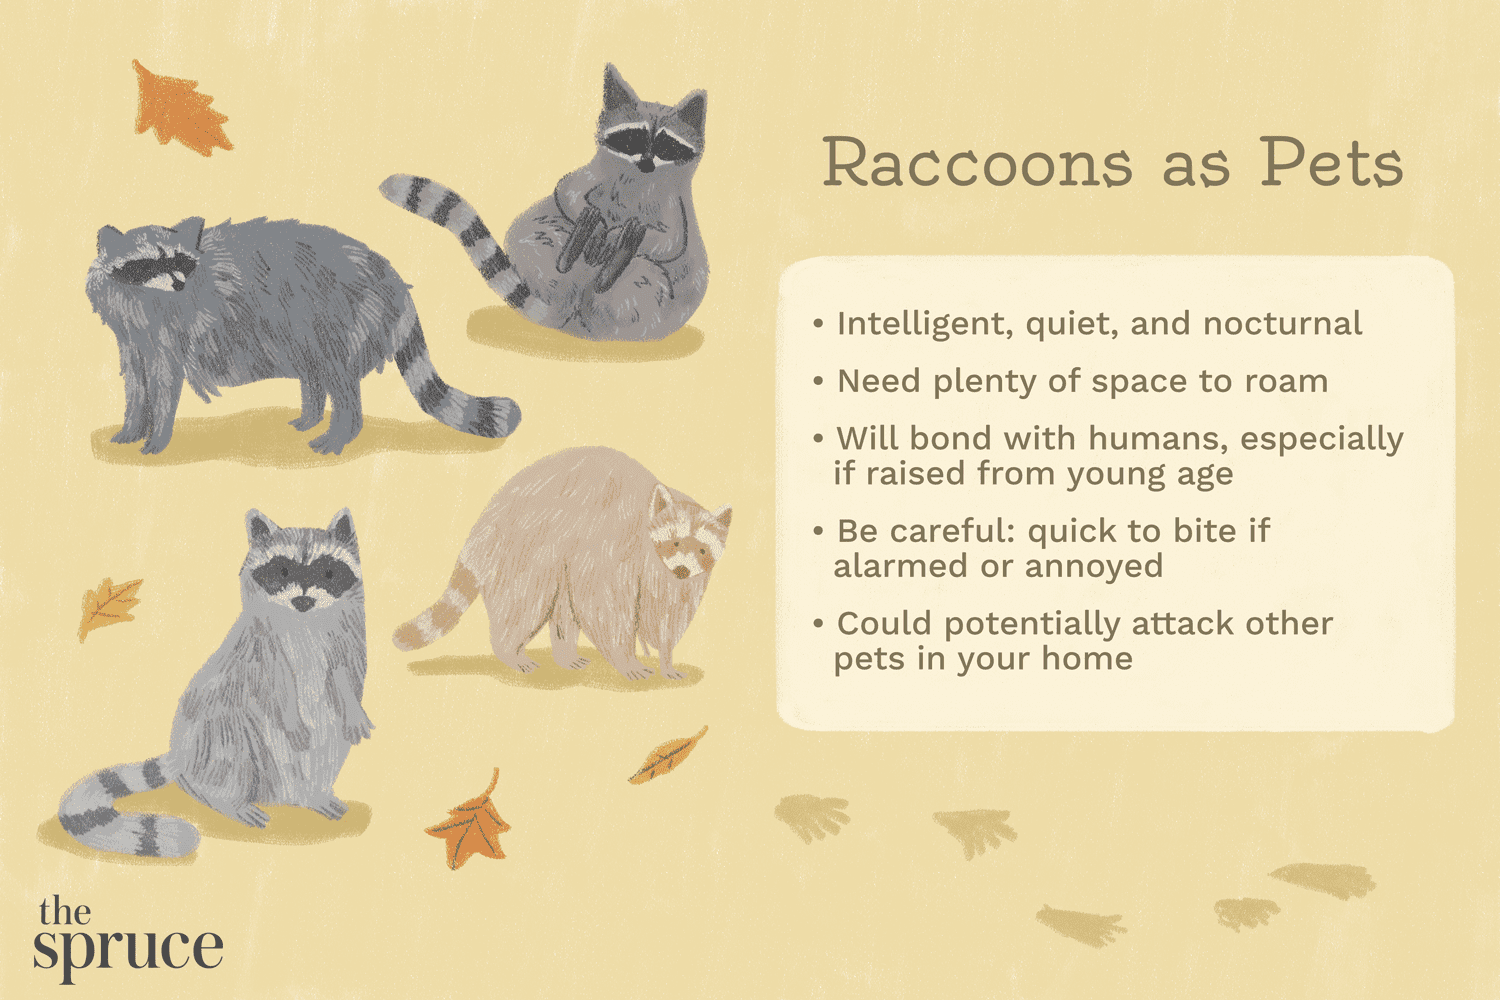 Illustration of pet raccoons and care tips